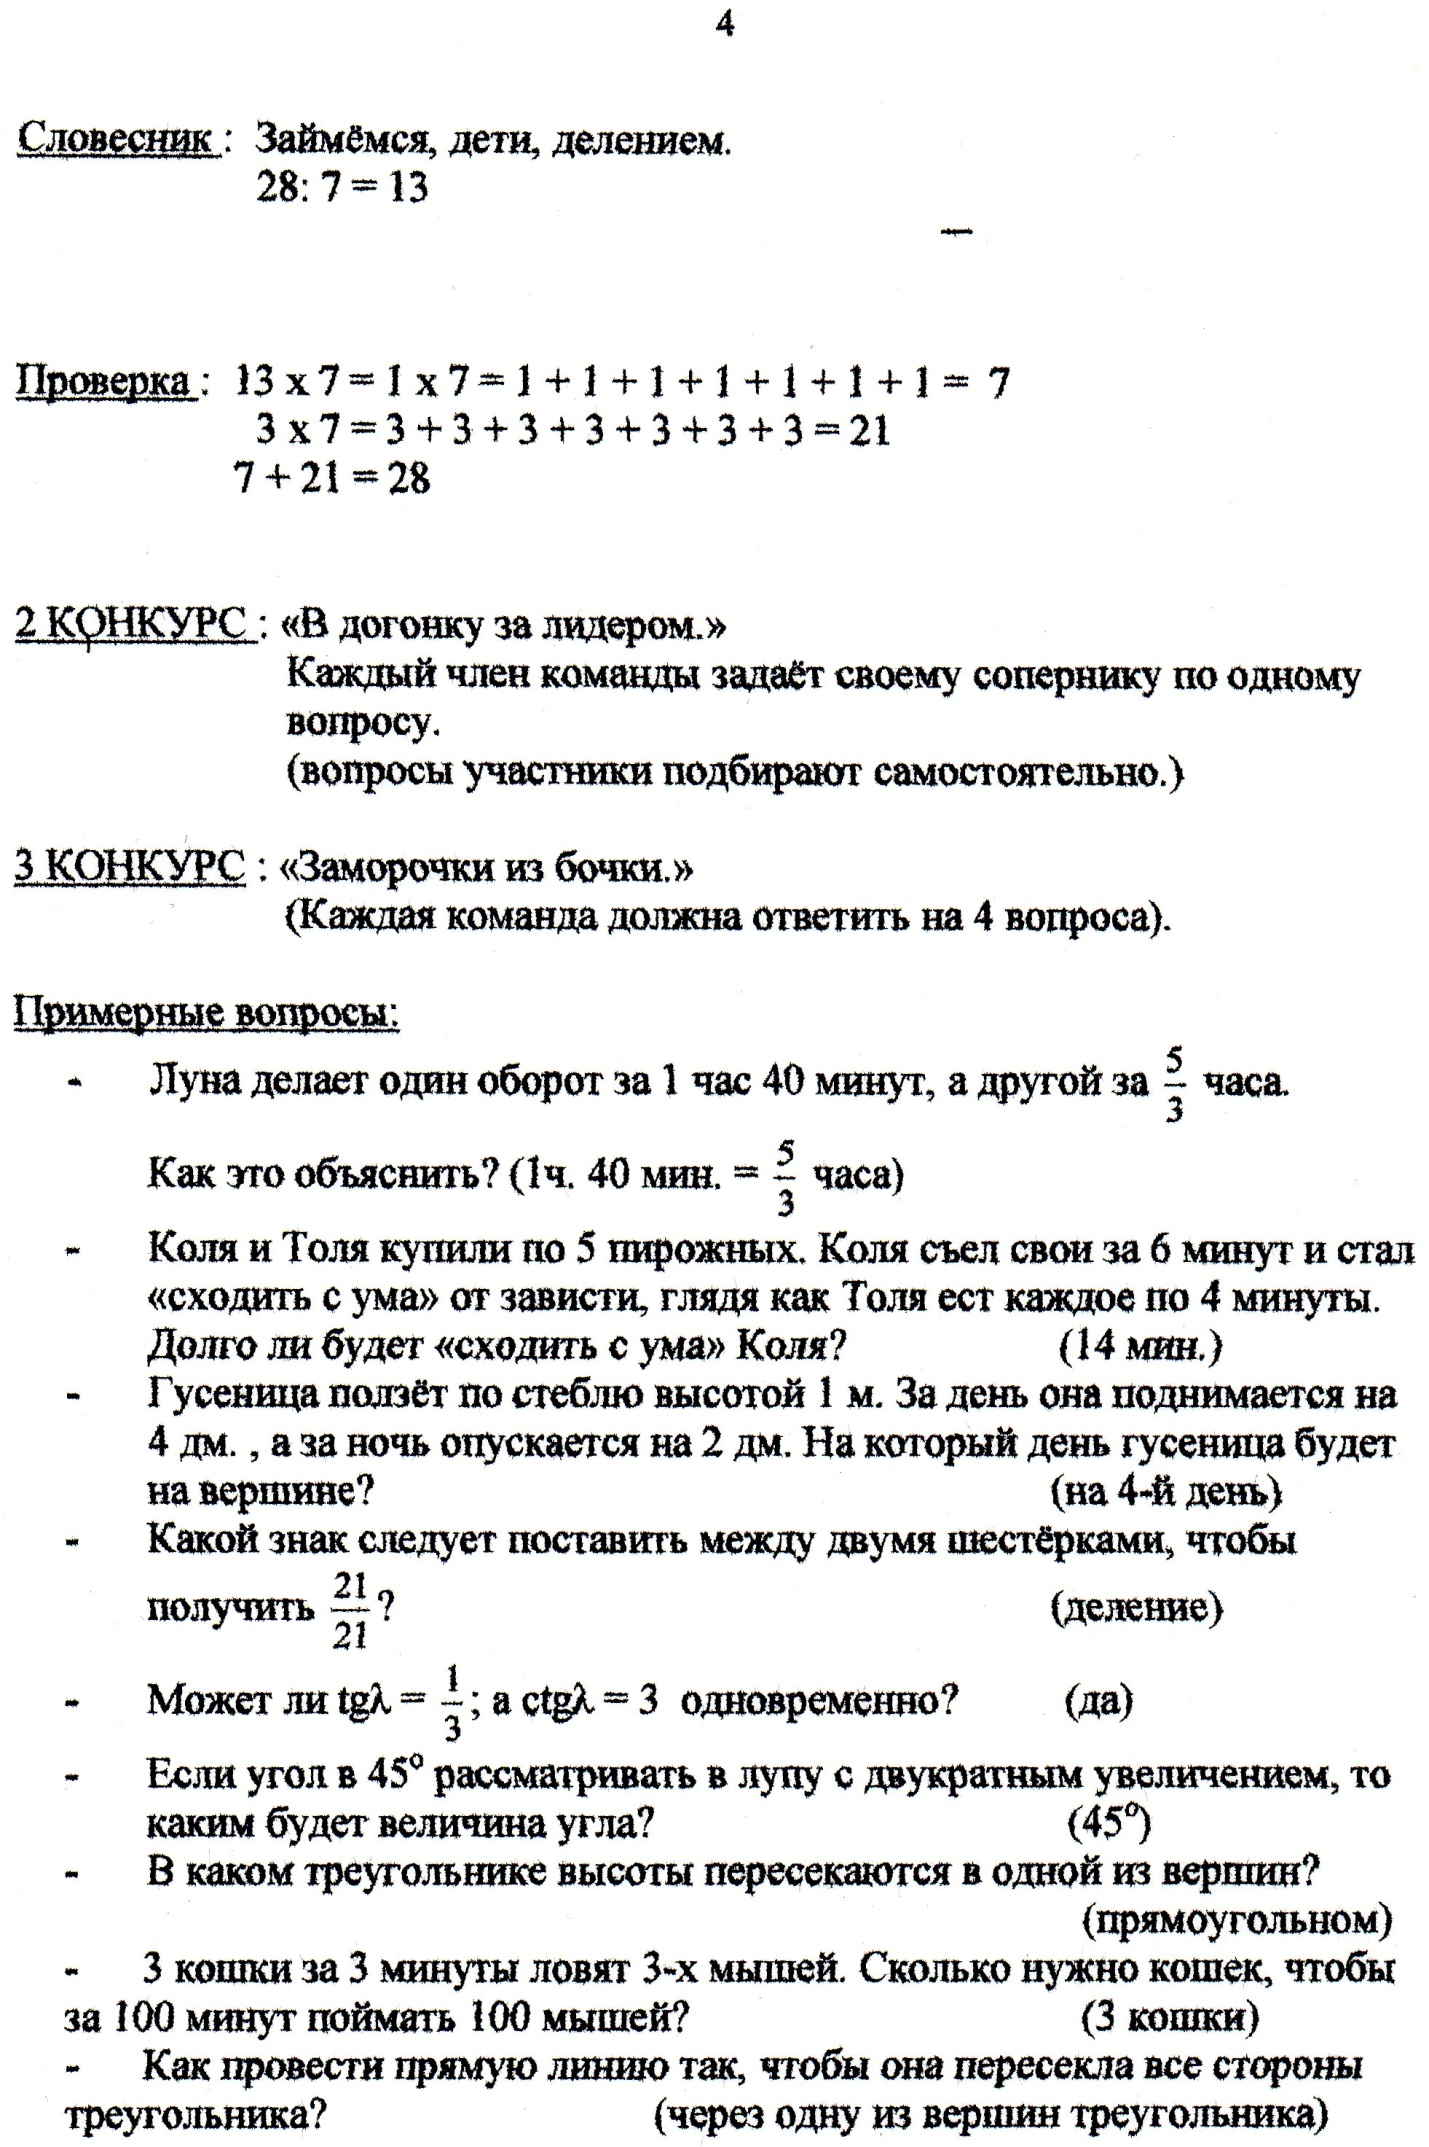 C:\Users\Валентина\Pictures\img175.jpg